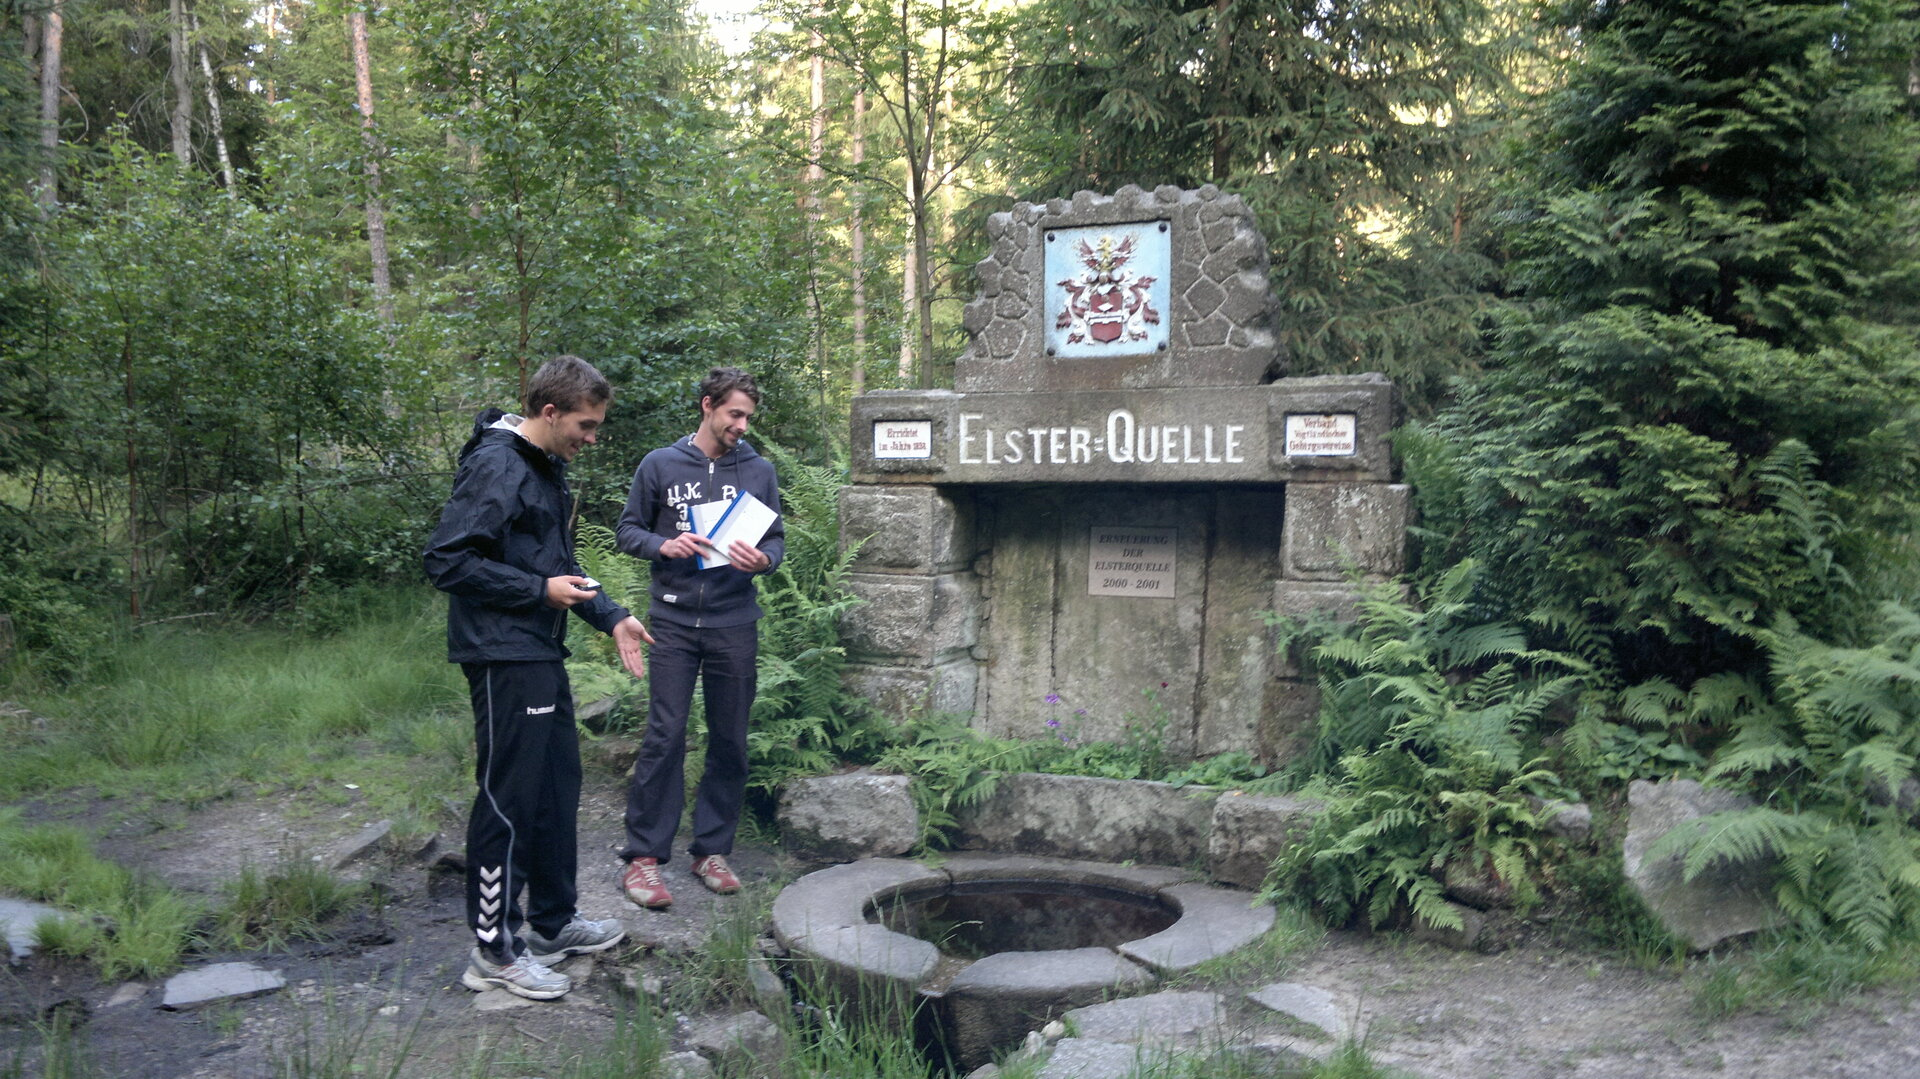 At the source of the Elster